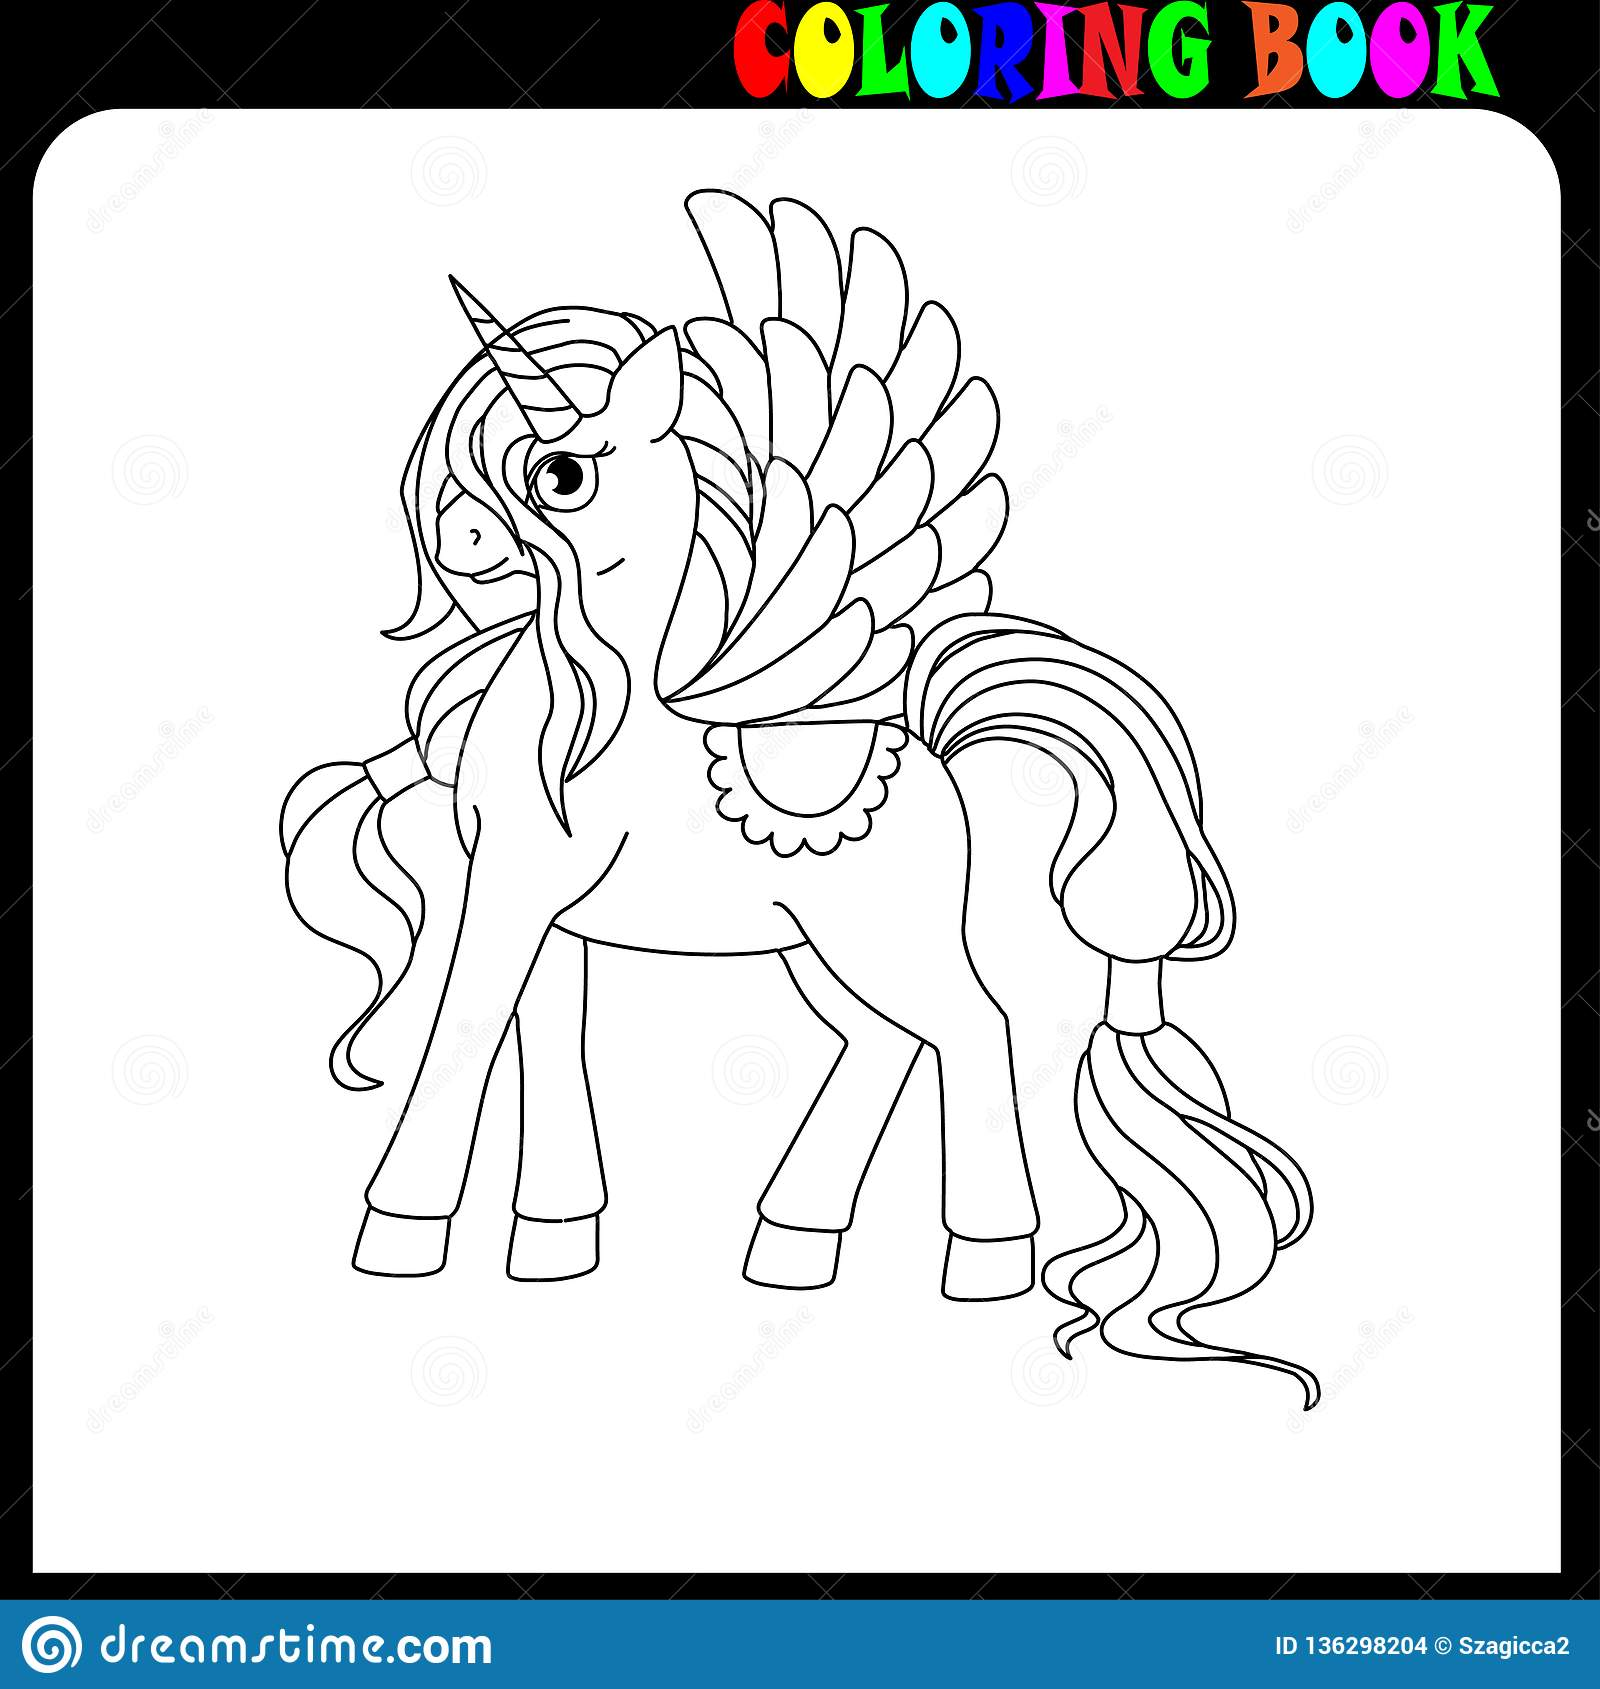 Coloring Book For Children Unicorn With Long Hair And Wings Stock Vector Illustration Of Girl Time 136298204